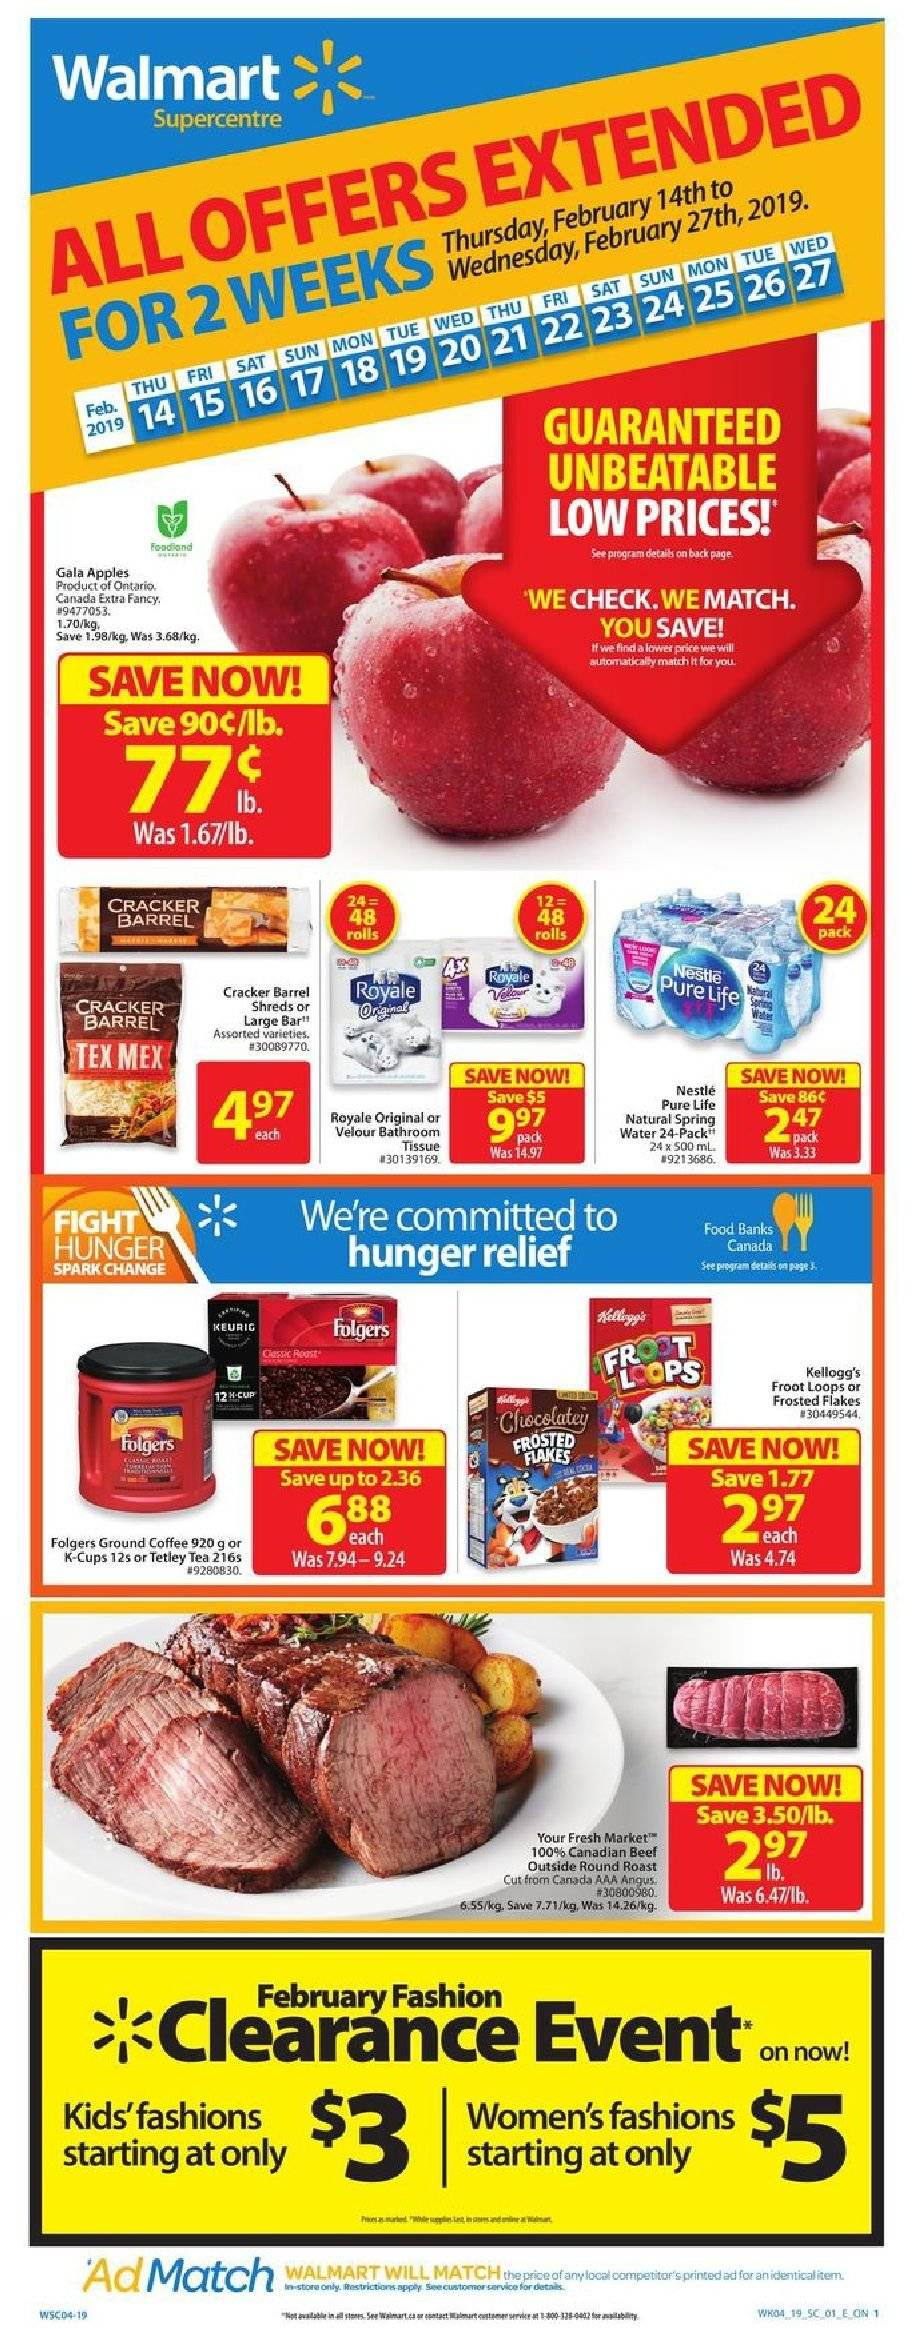 Walmart Flyer  - February 14, 2019 - February 27, 2019. Page 1.